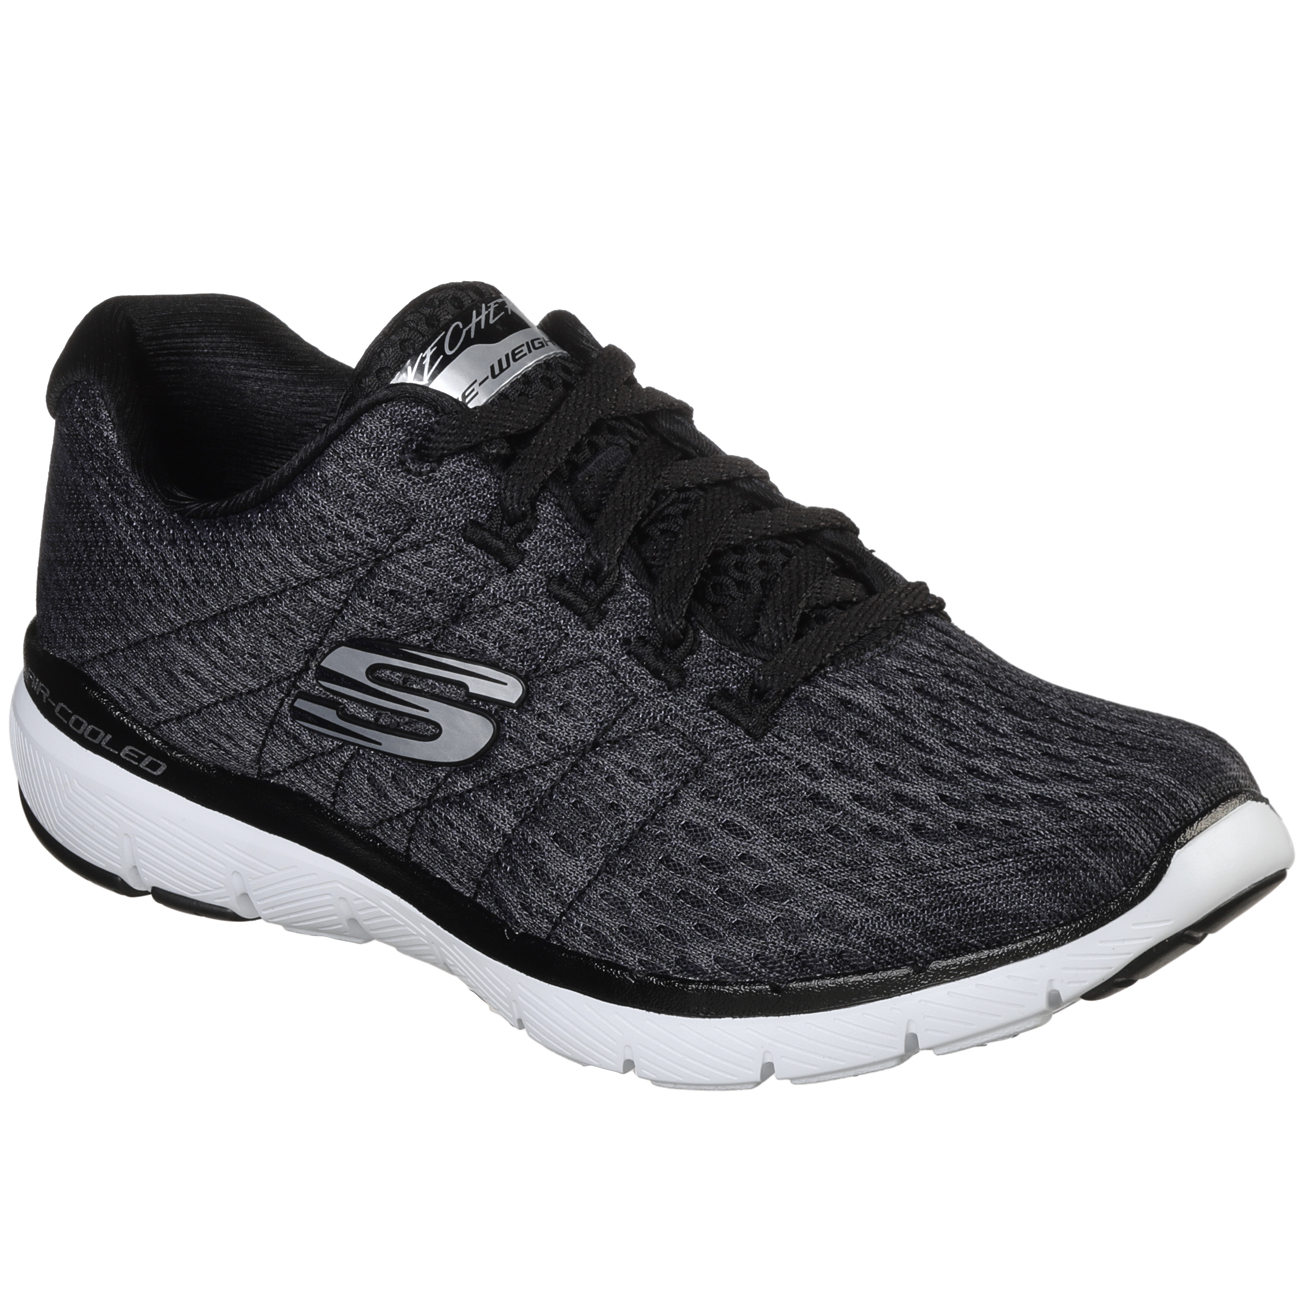 Skechers Flex Appeal 3.0 Satellites